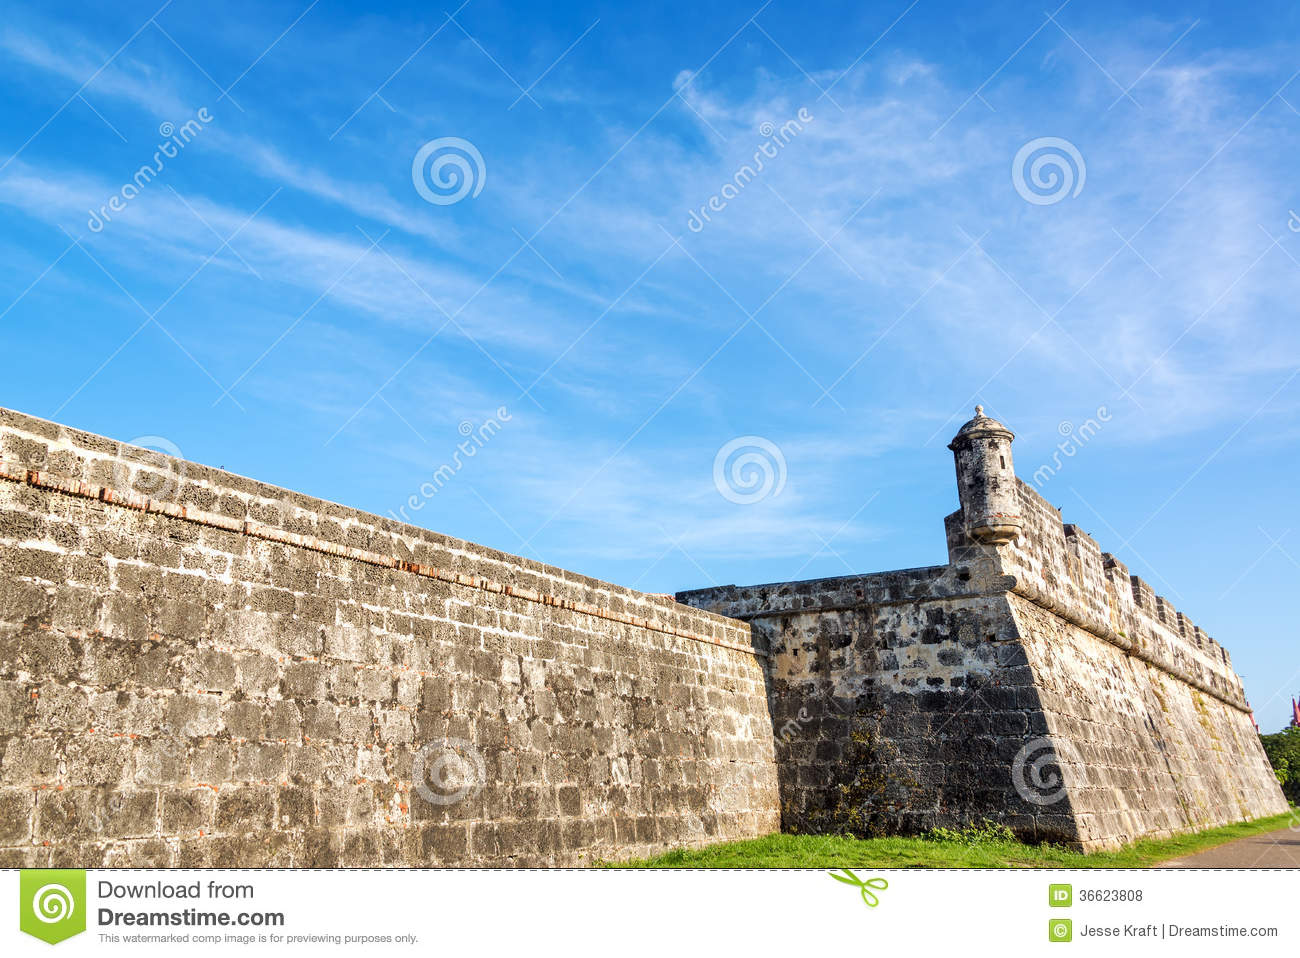 Wall of Cartagena, Colombia